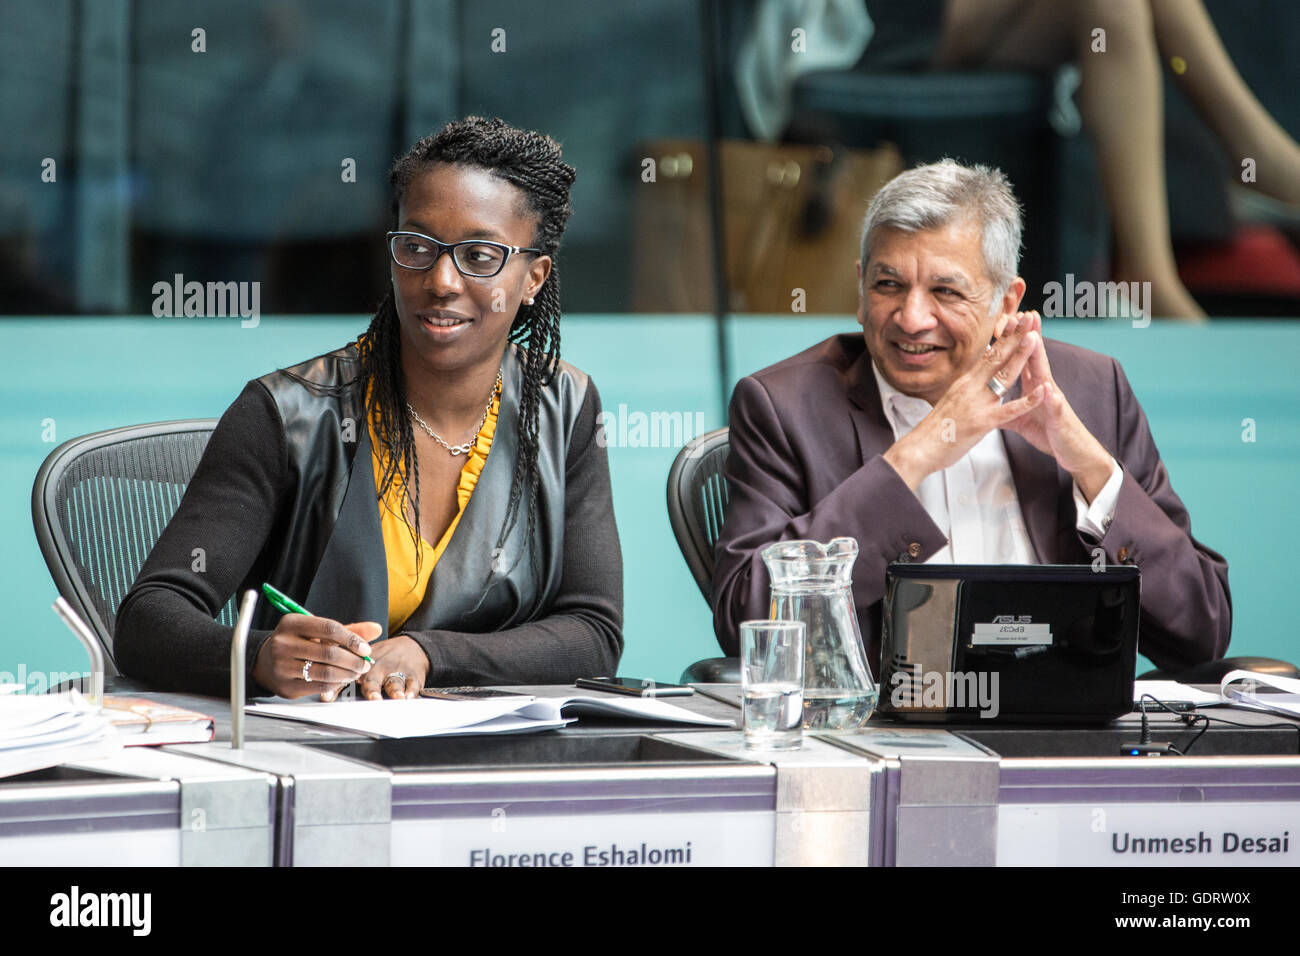 London, UK. 20th July, 2016. Labour London Assembly Members Florence Eshalomi and Unmesh Desai at Mayor's Question - Stock Image